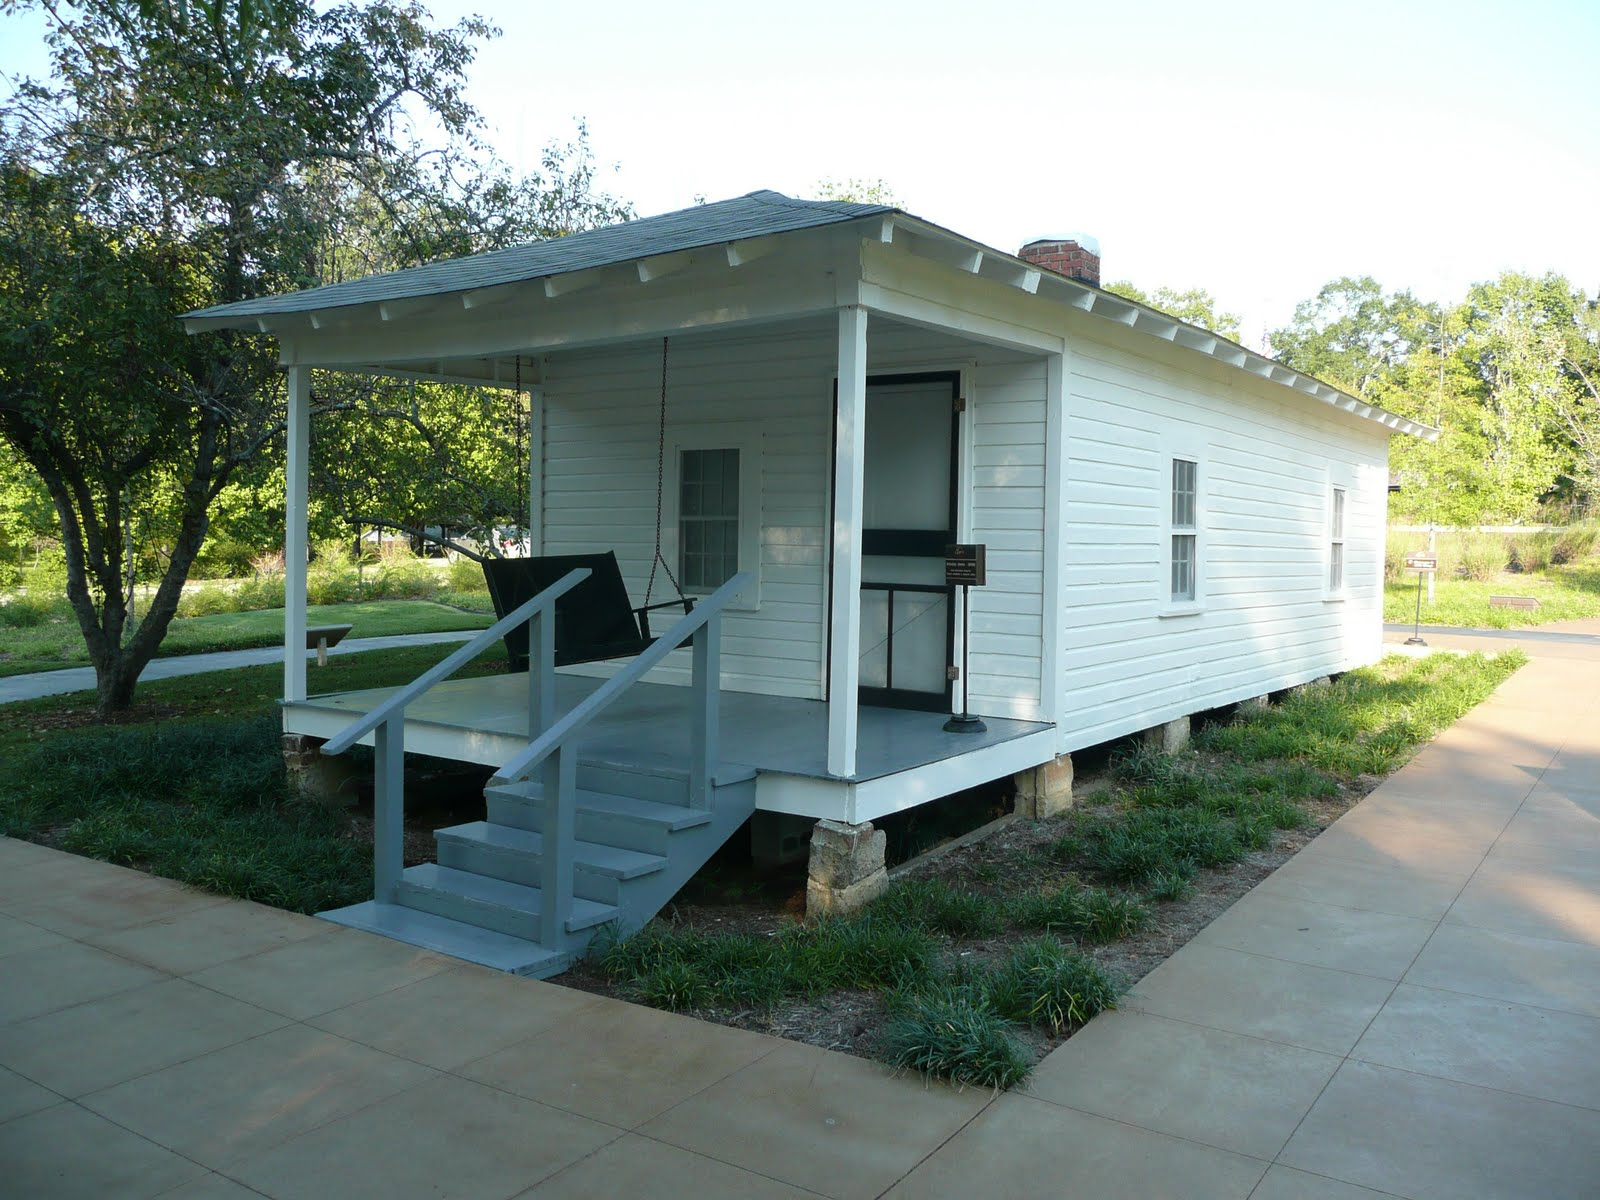 Elvis Presley birthplace Tupelo, MS